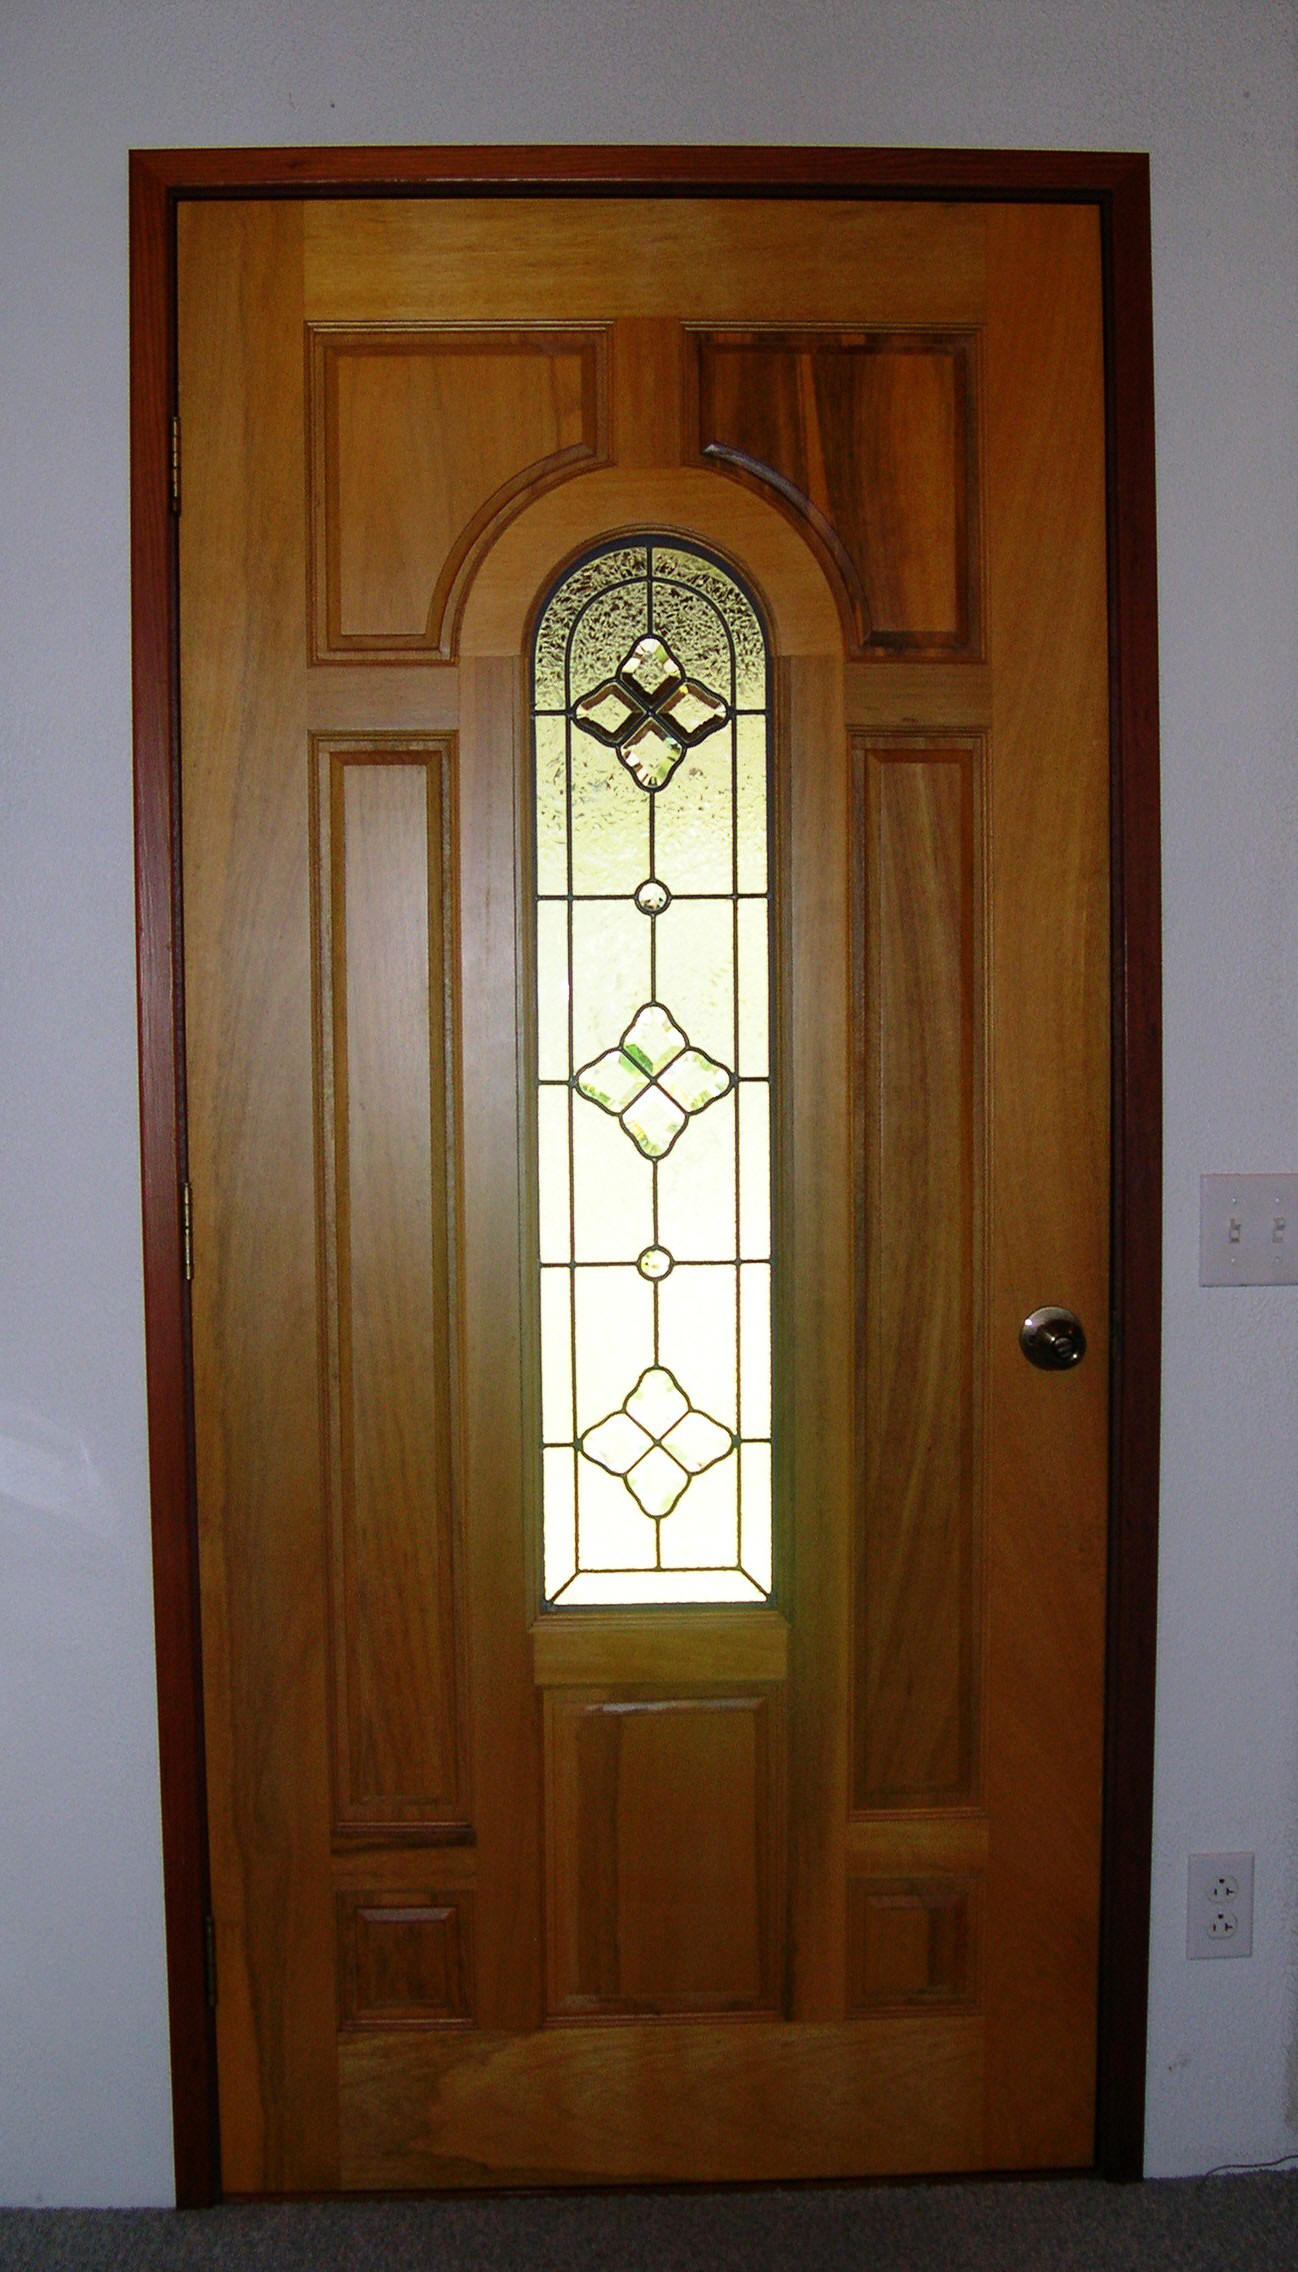 Design of main entrance door joy studio design gallery for Door design in wood images